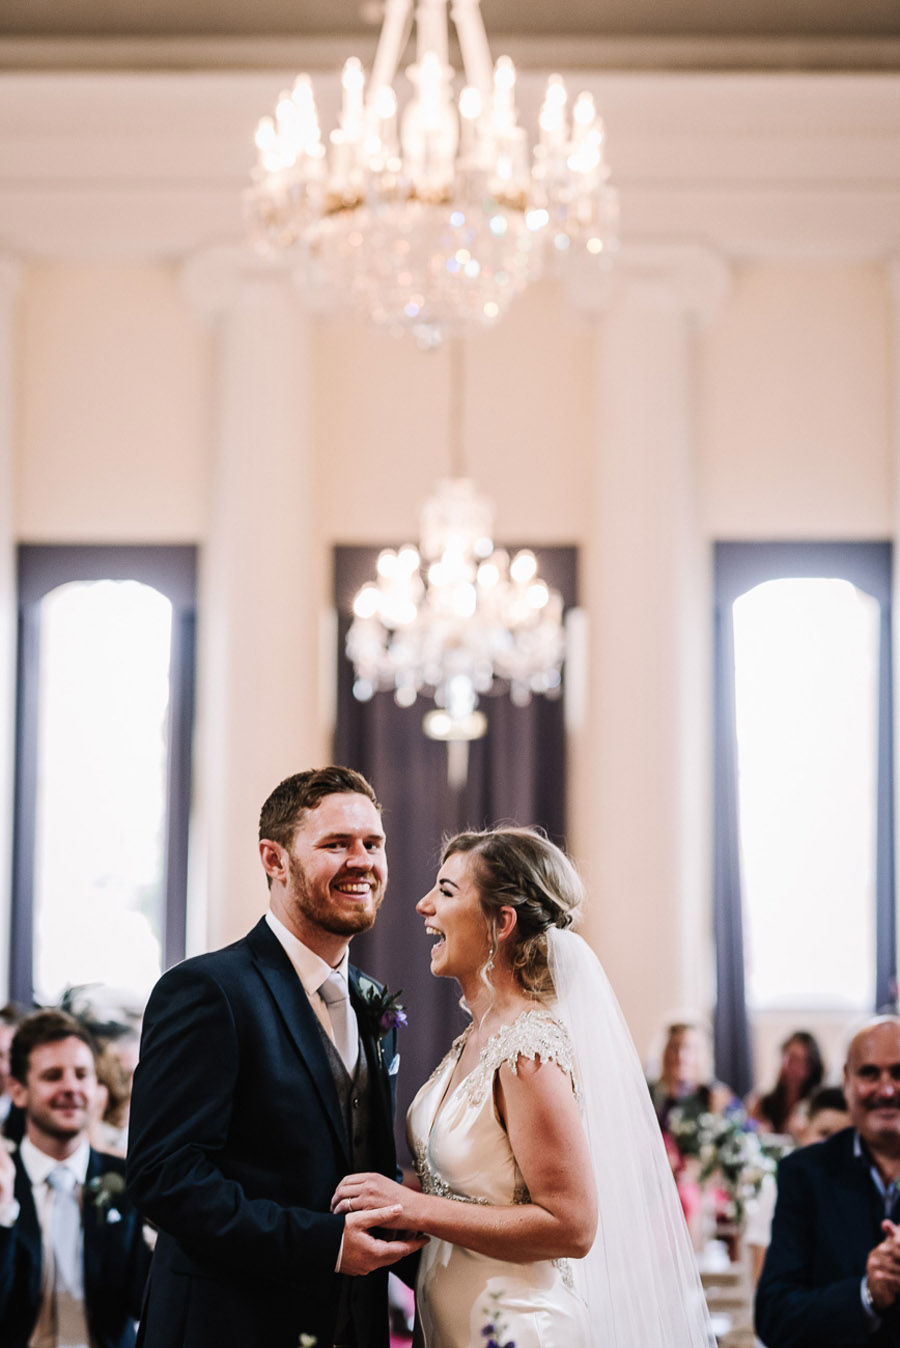 Pittville Pump Room wedding blog, gorgeous styling and recommended suppliers on the English Wedding Blog (6)